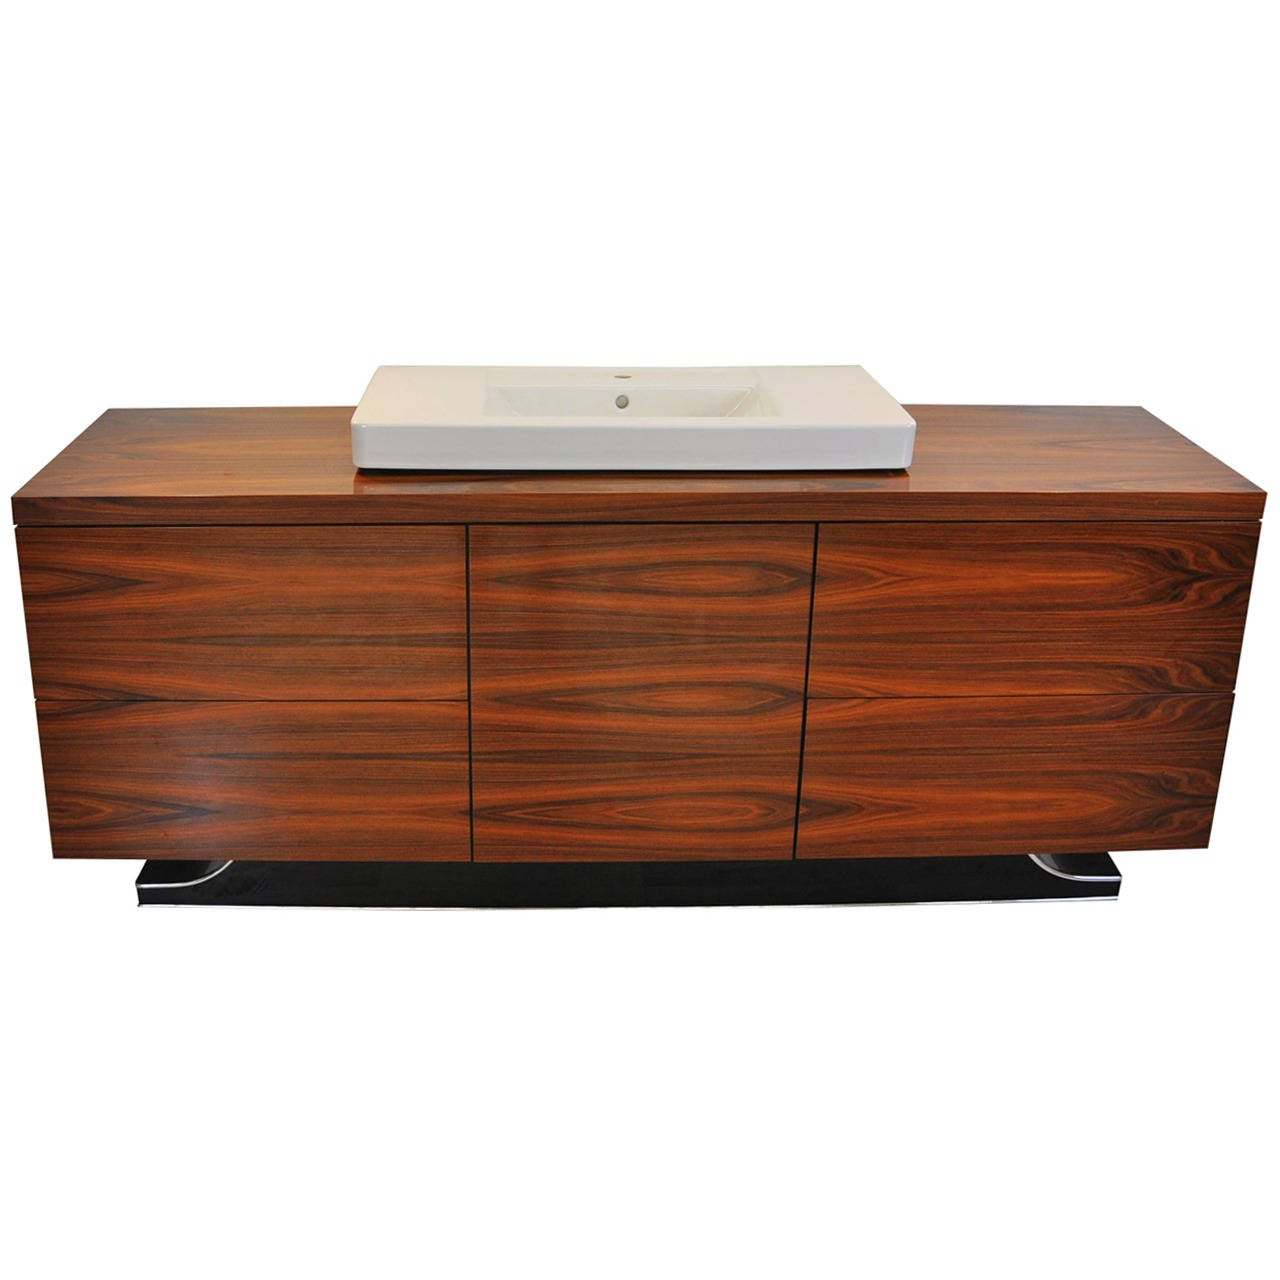 Perfect  Amp VINTAGE FURNITURE Gt BATHROOM FURNITURE Gt Art Deco Furniture